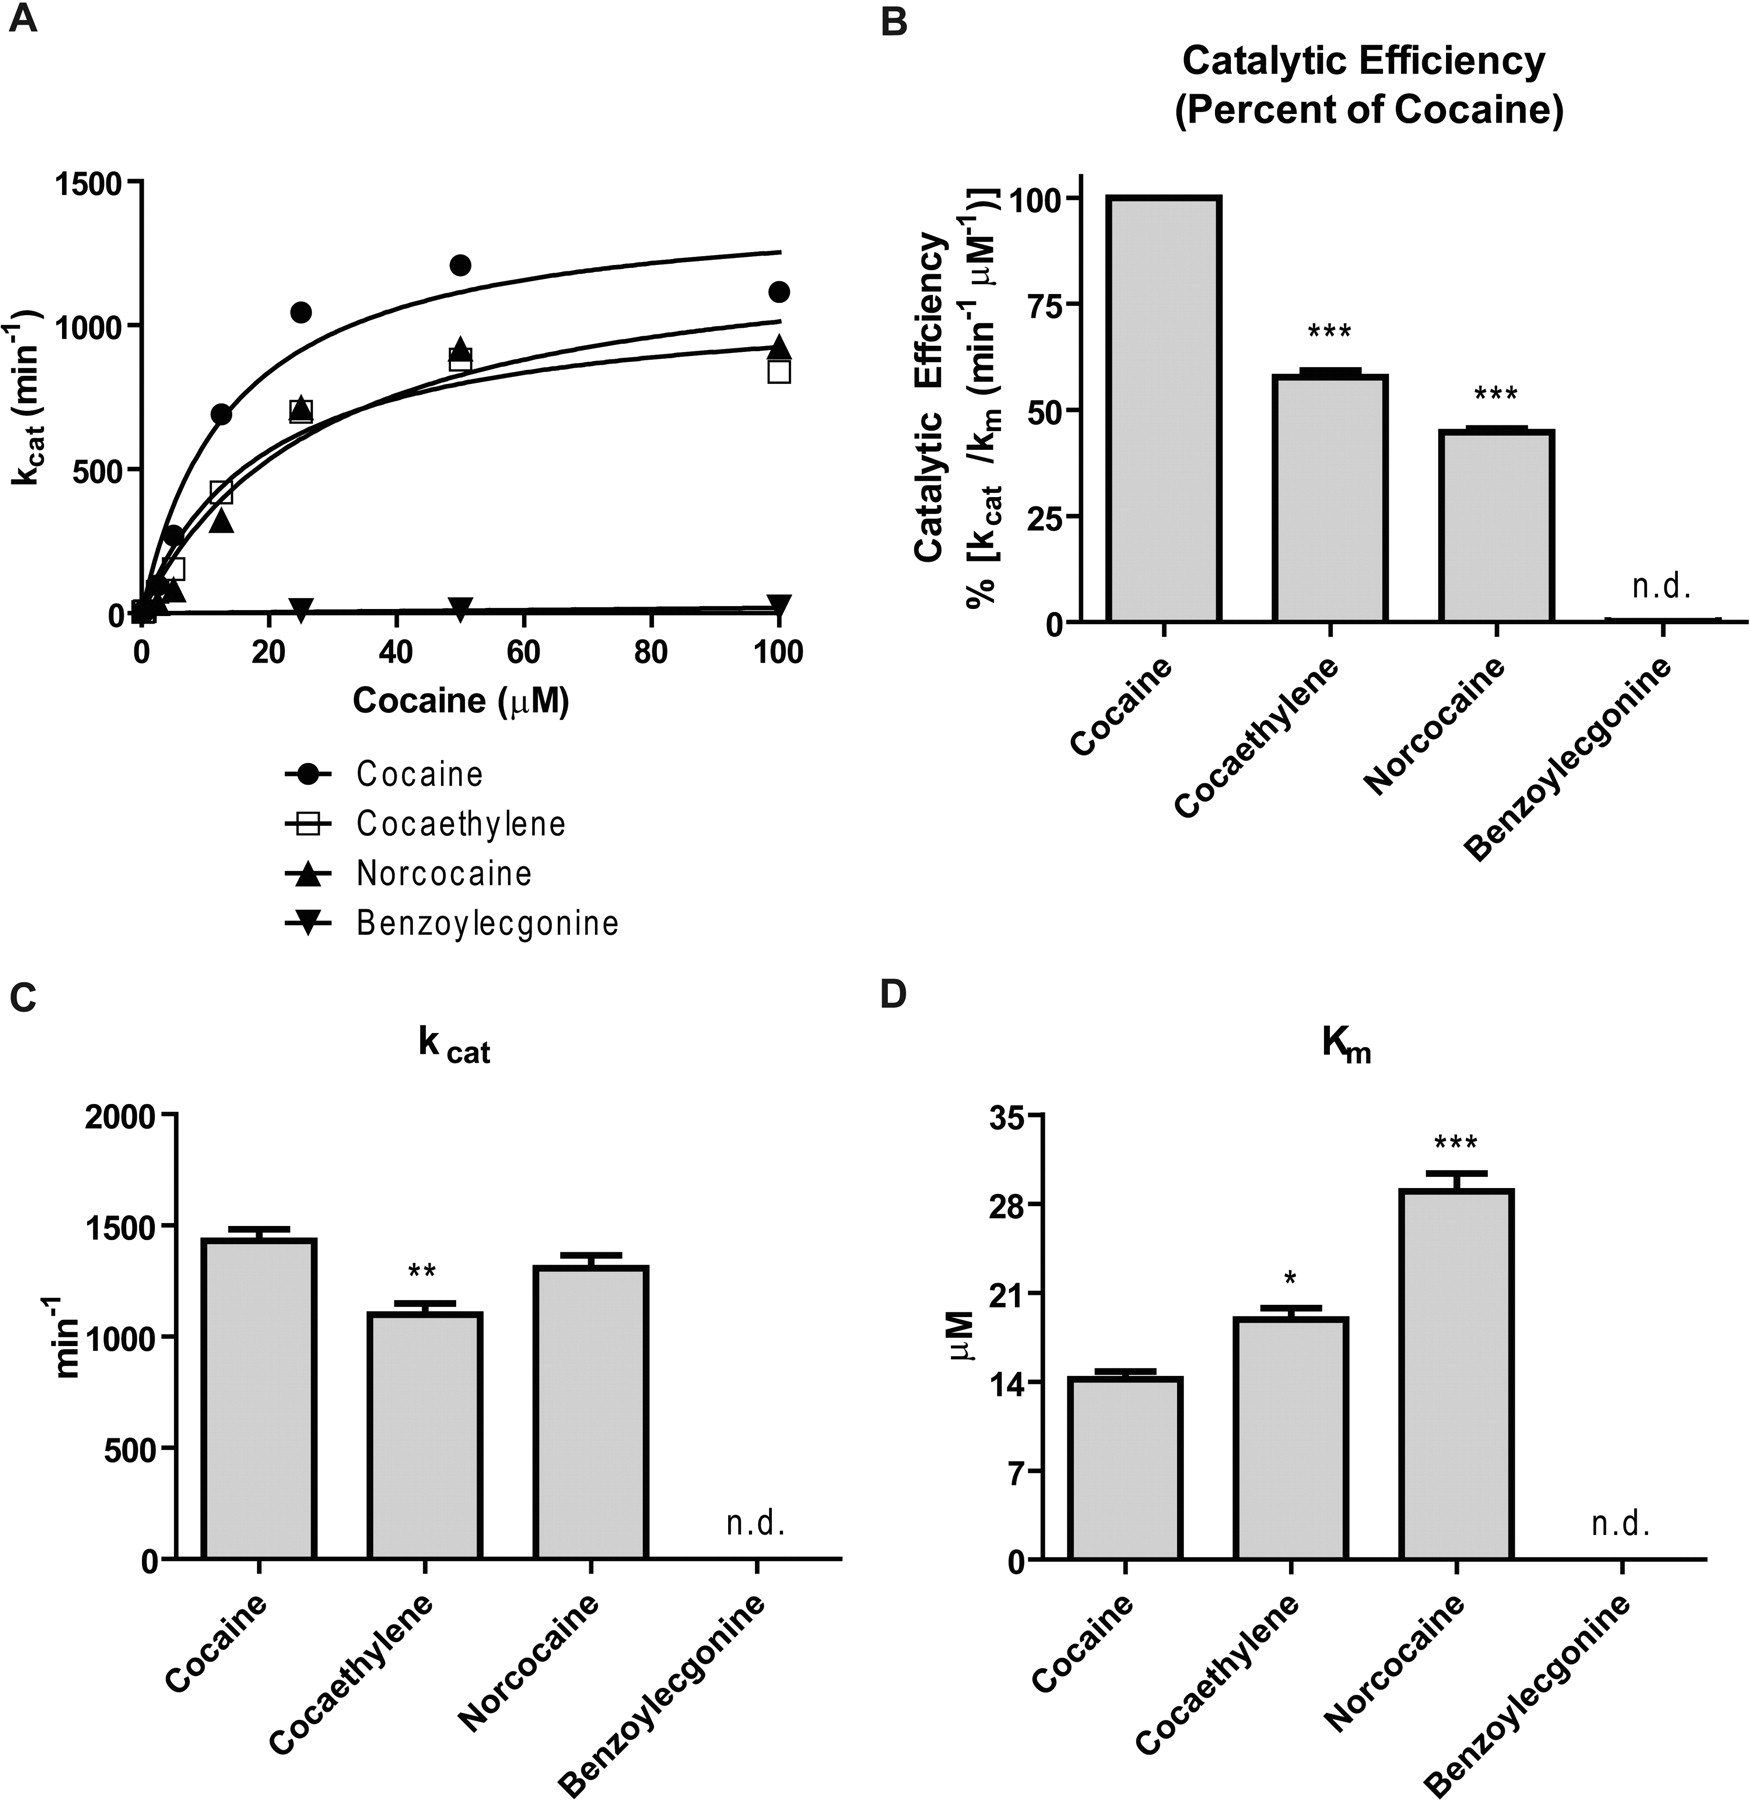 The Ability of Bacterial Cocaine Esterase to Hydrolyze